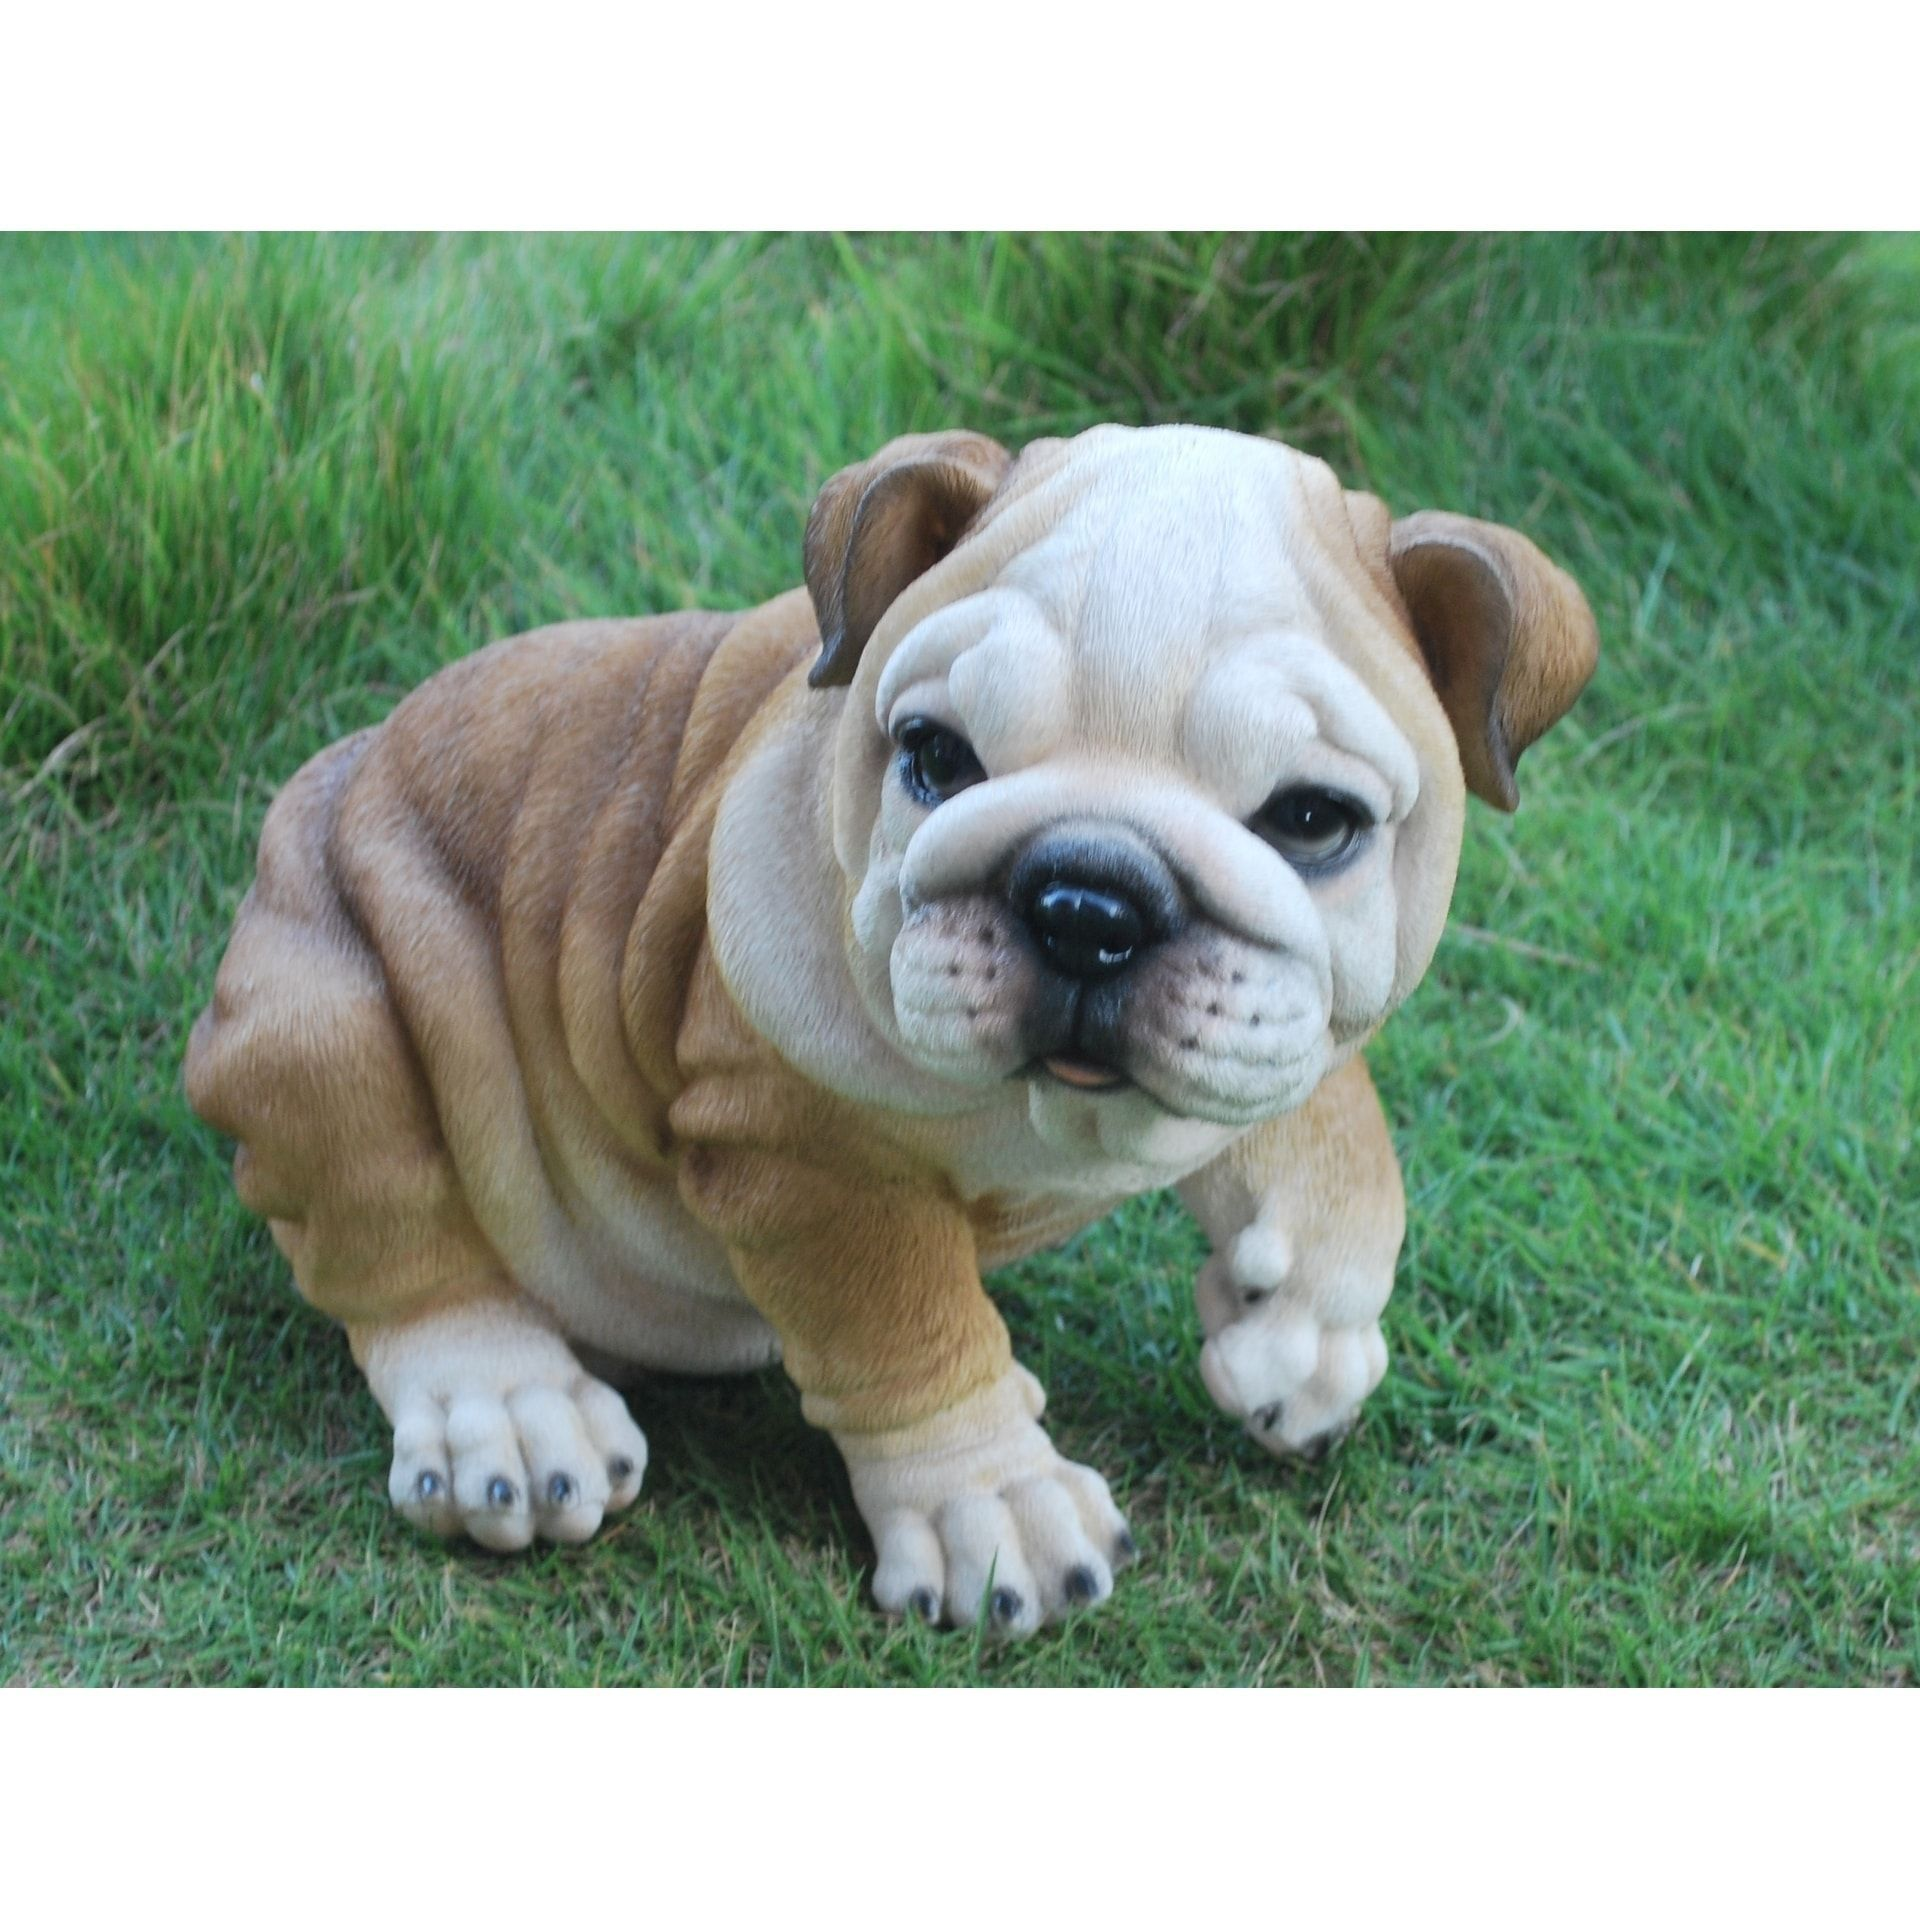 Bulldog Puppy Polyresin Outdoor Decor Bulldog Puppies Puppies